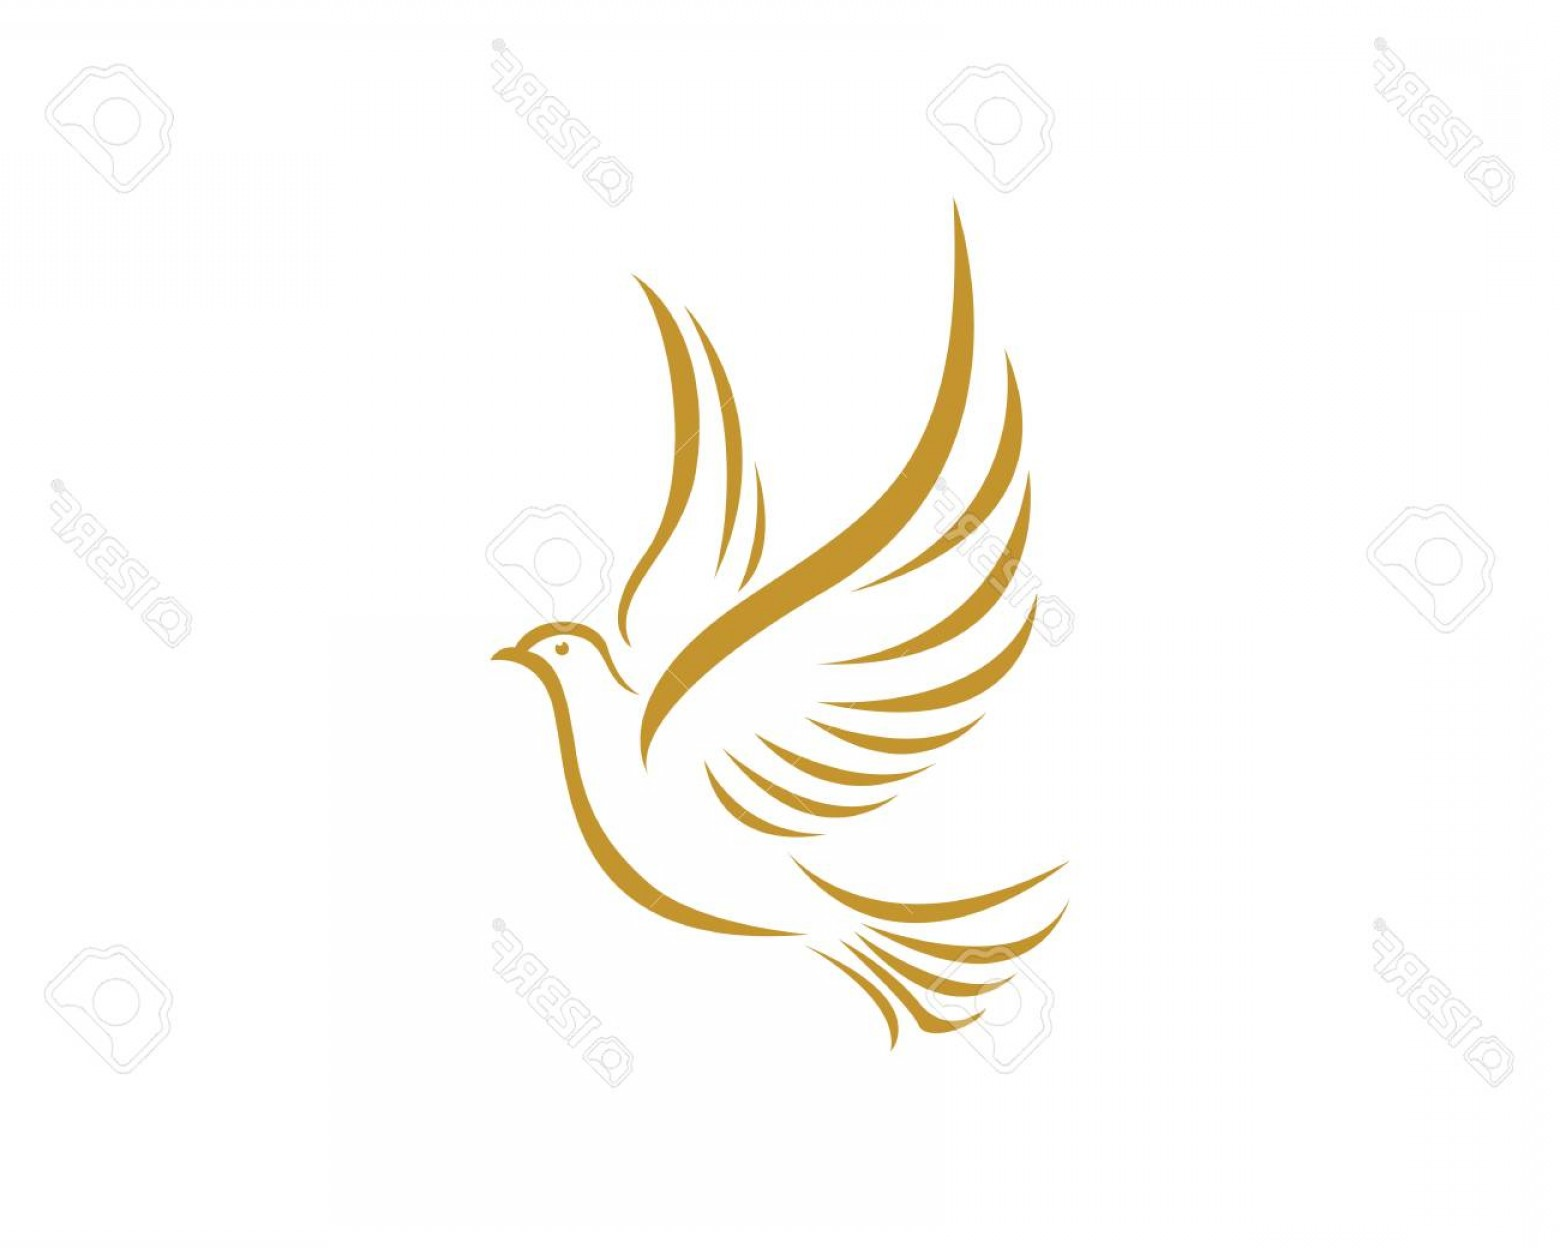 Download High Quality dove clipart gold Transparent PNG.